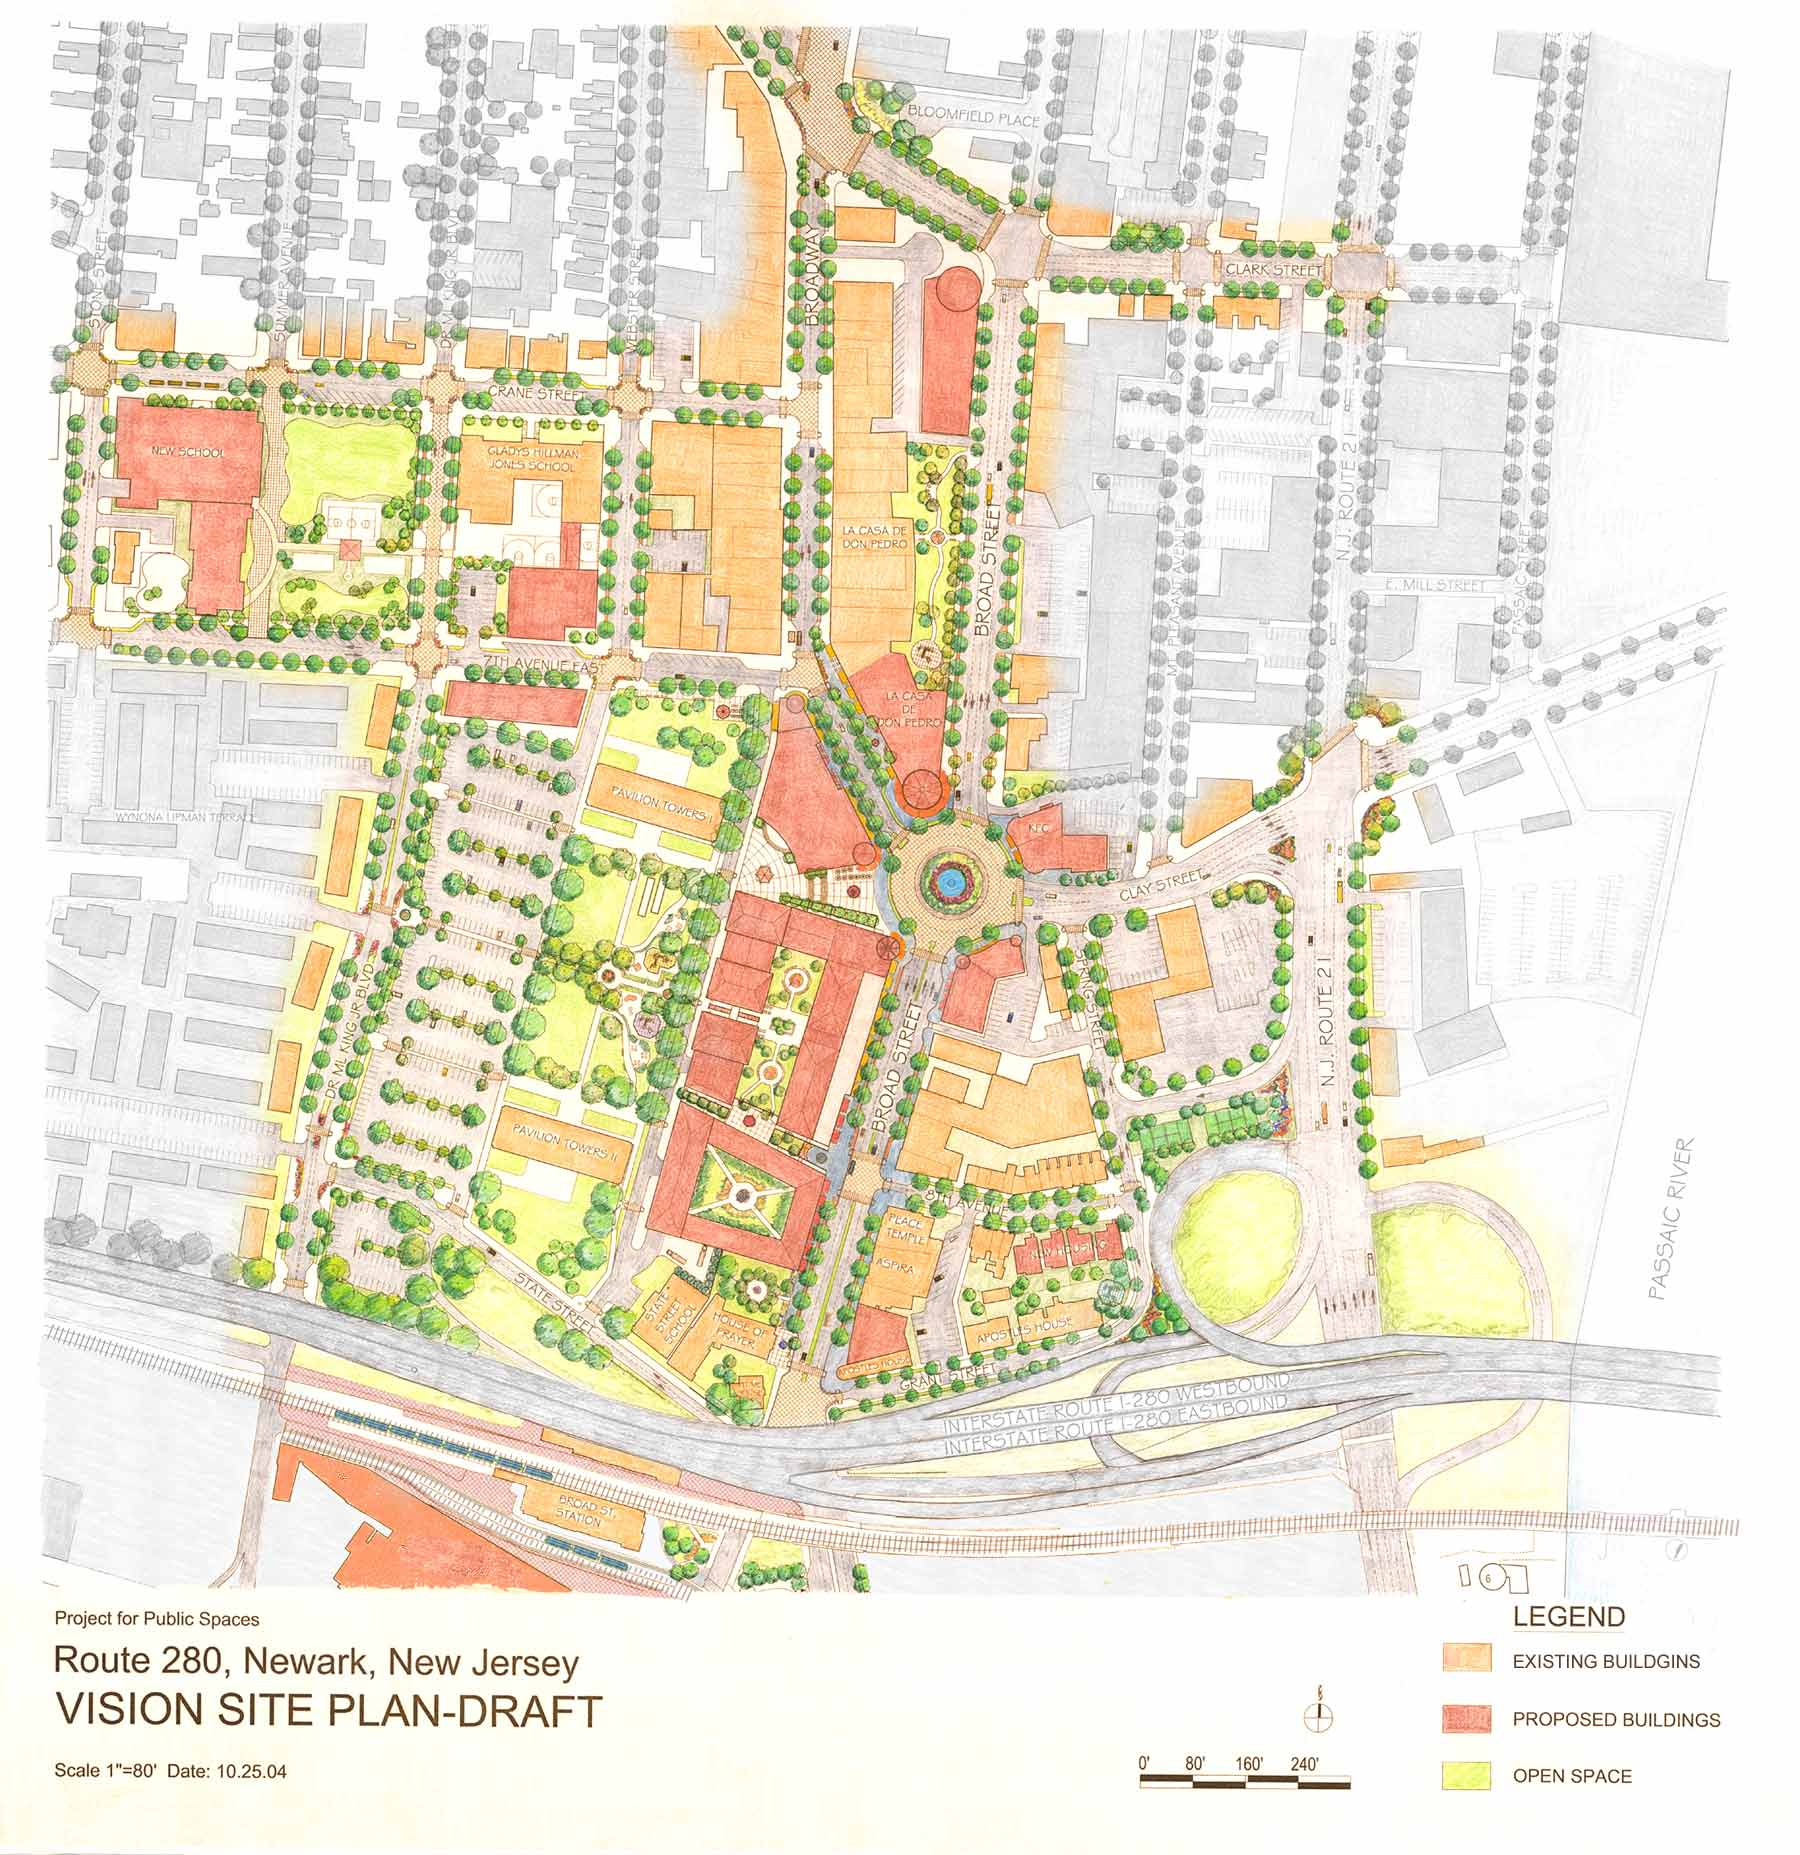 Route 280 Community Visioning